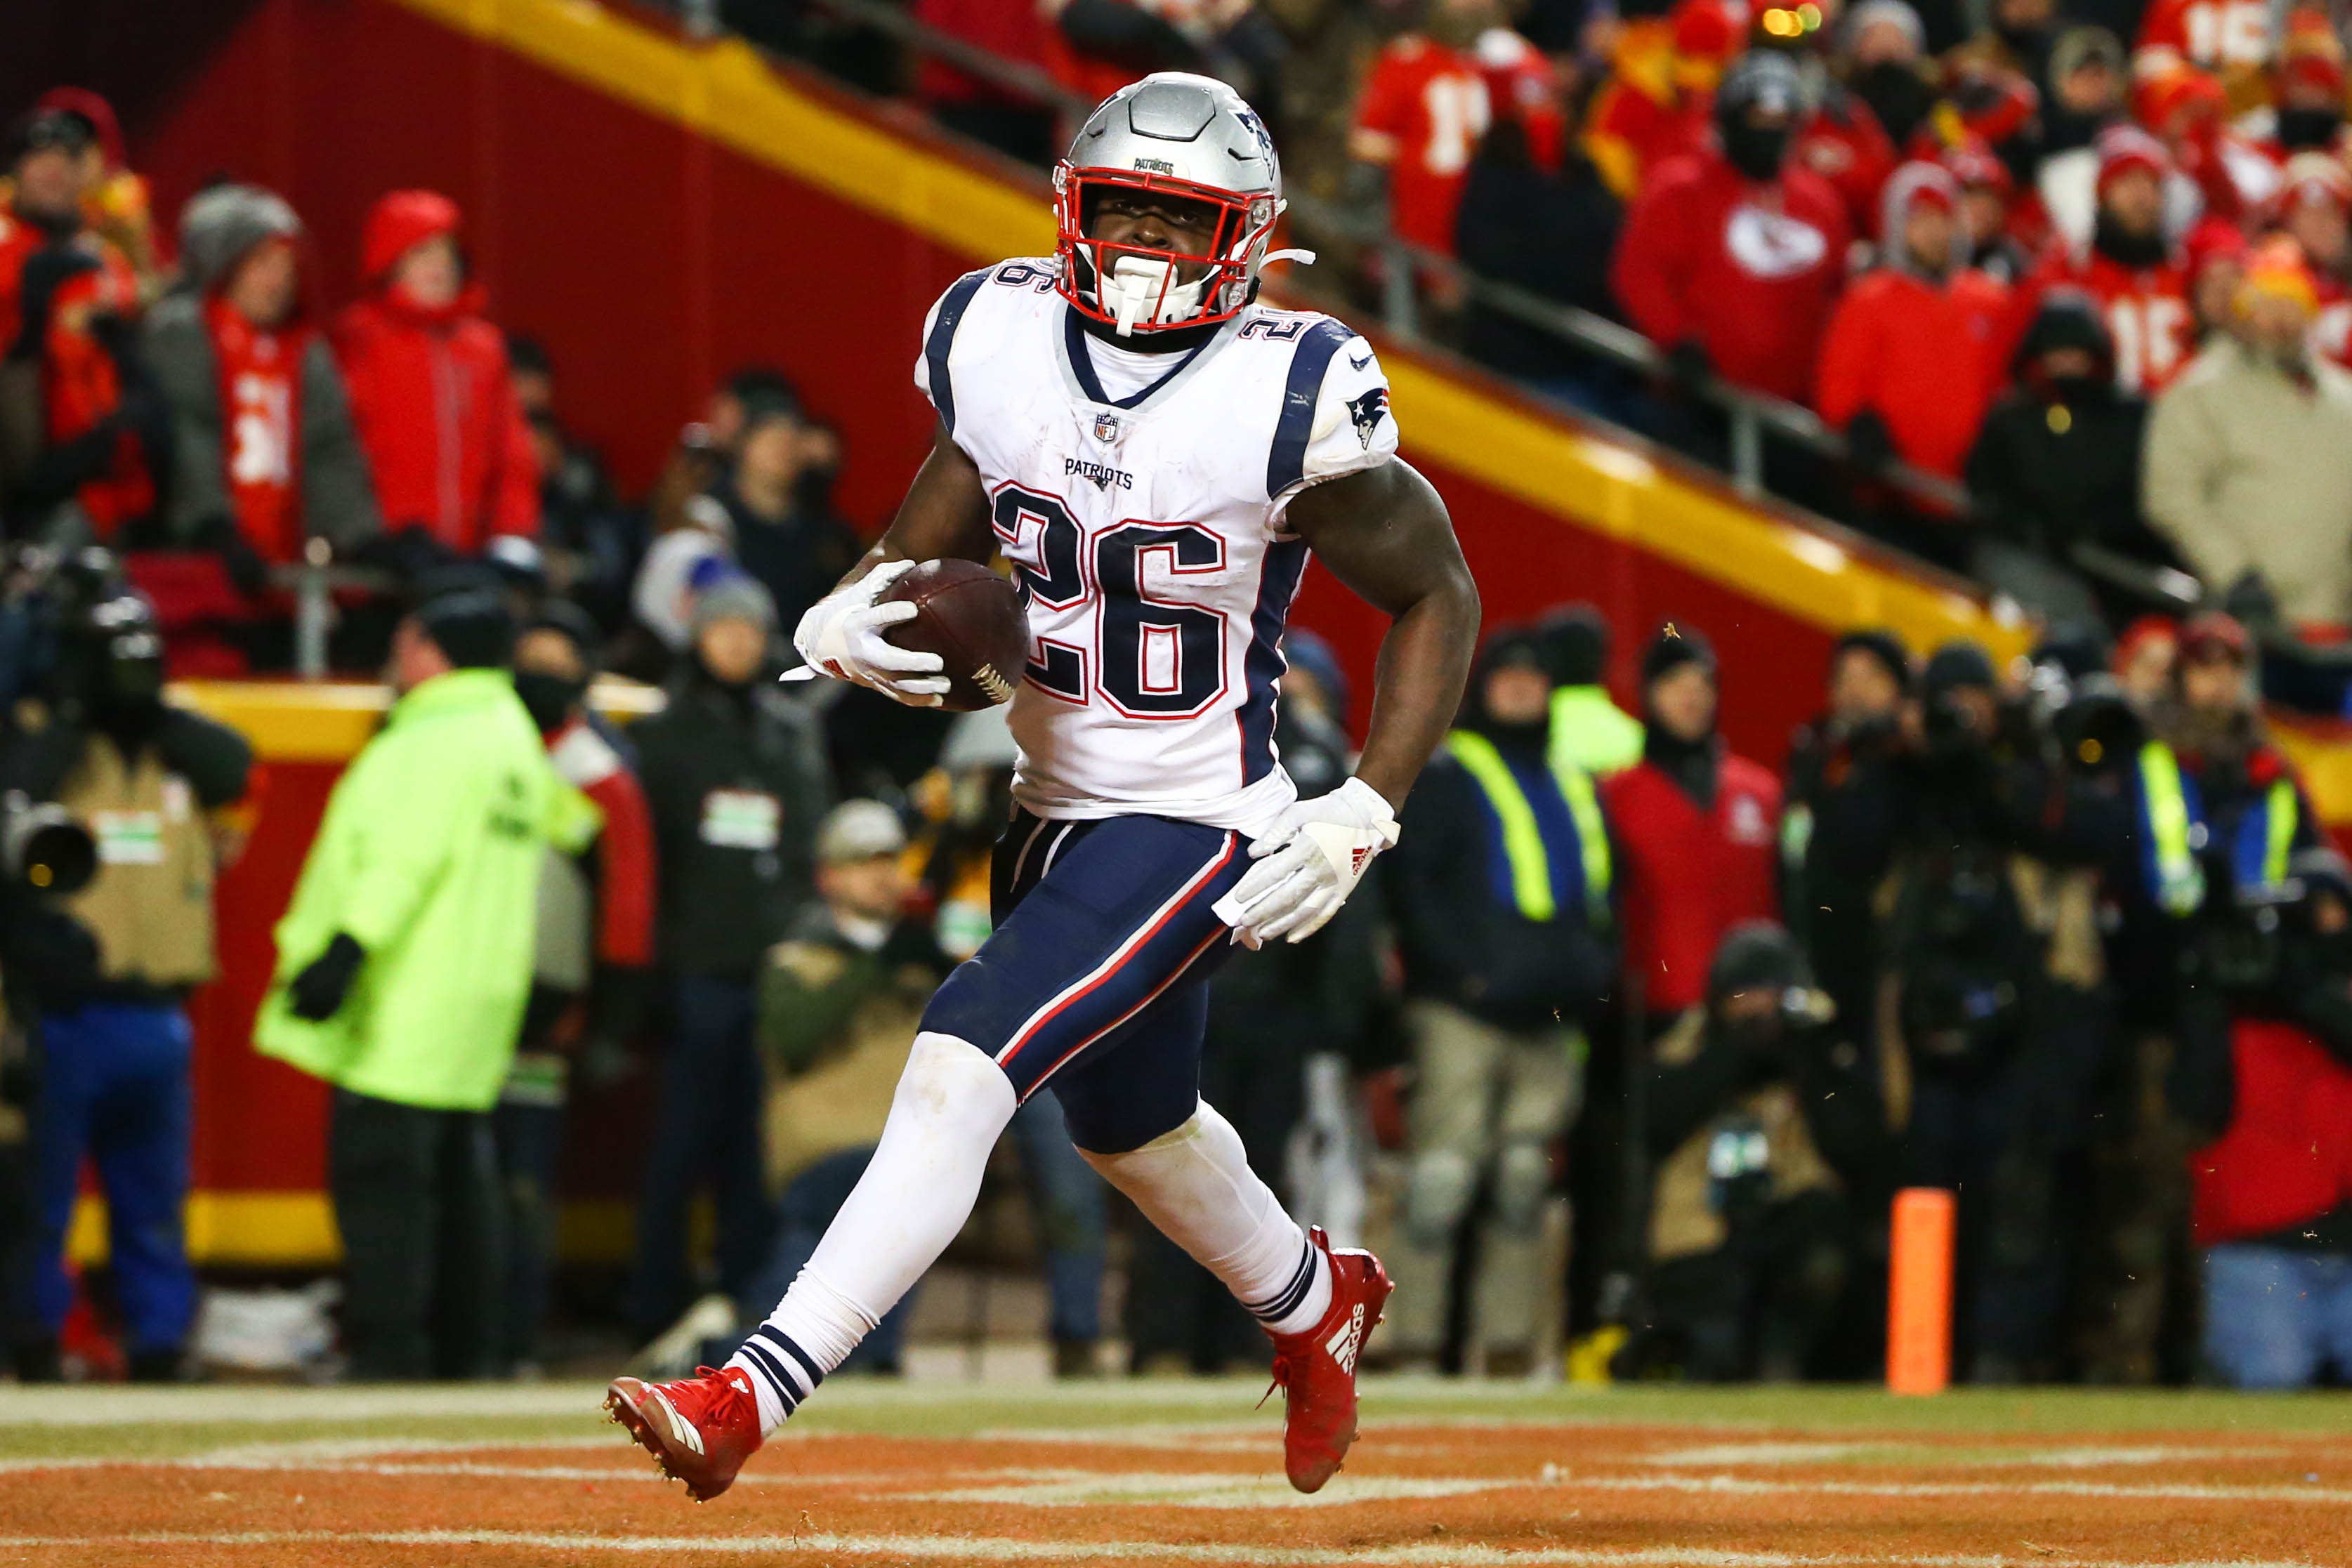 Sony Michel has already set rookie rushing touchdown mark in